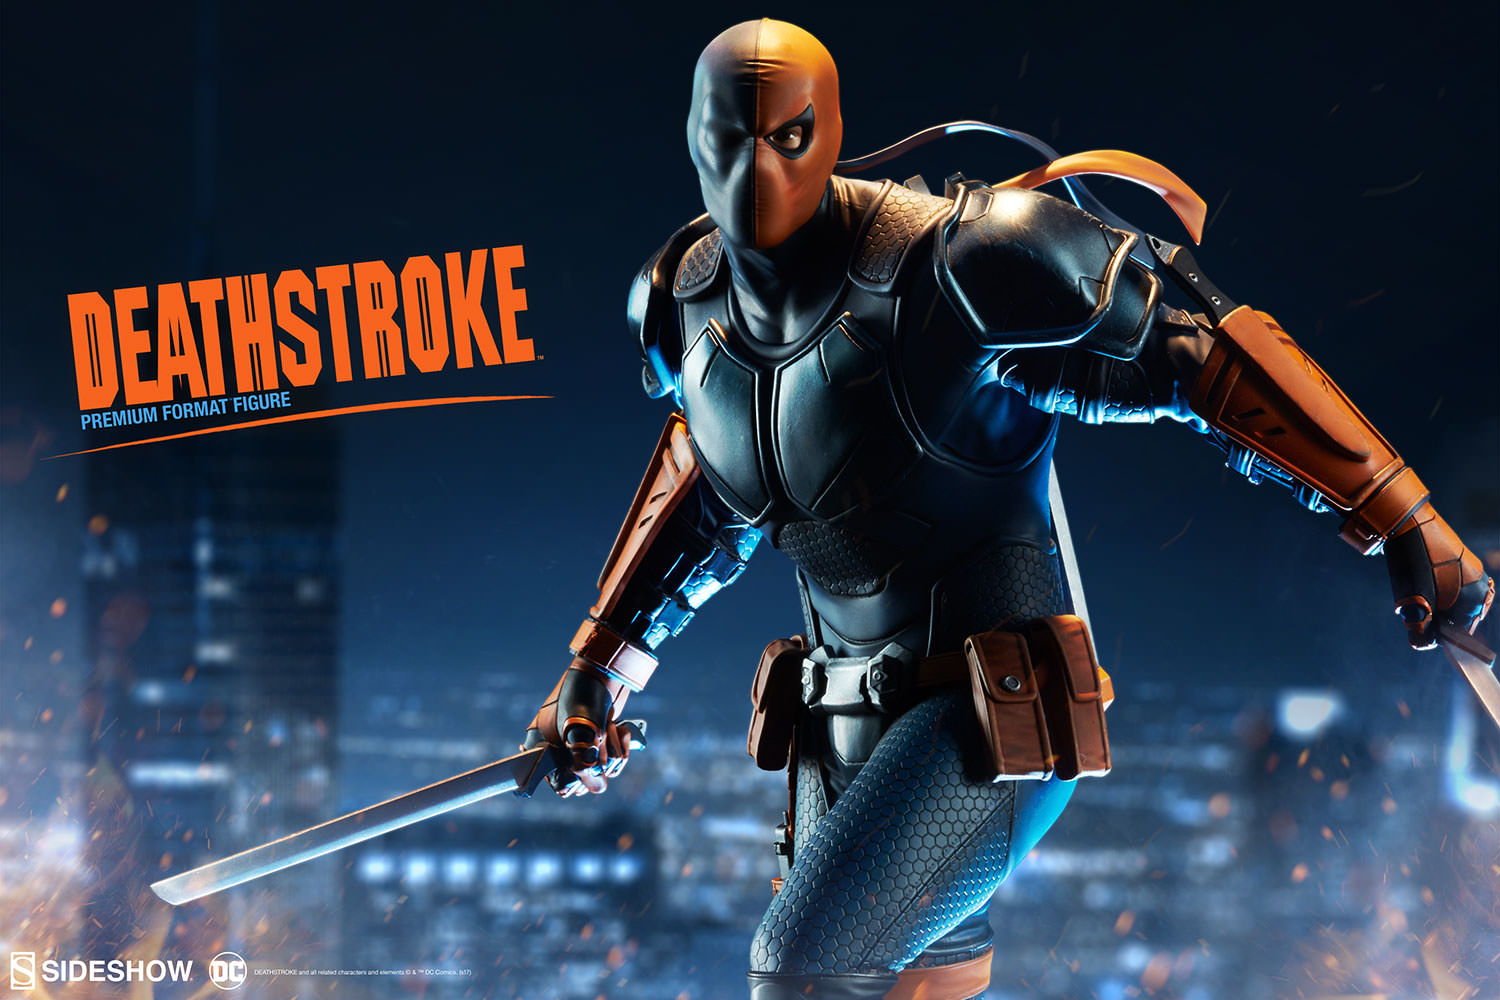 deathstroke premium format figure sideshow collectibles